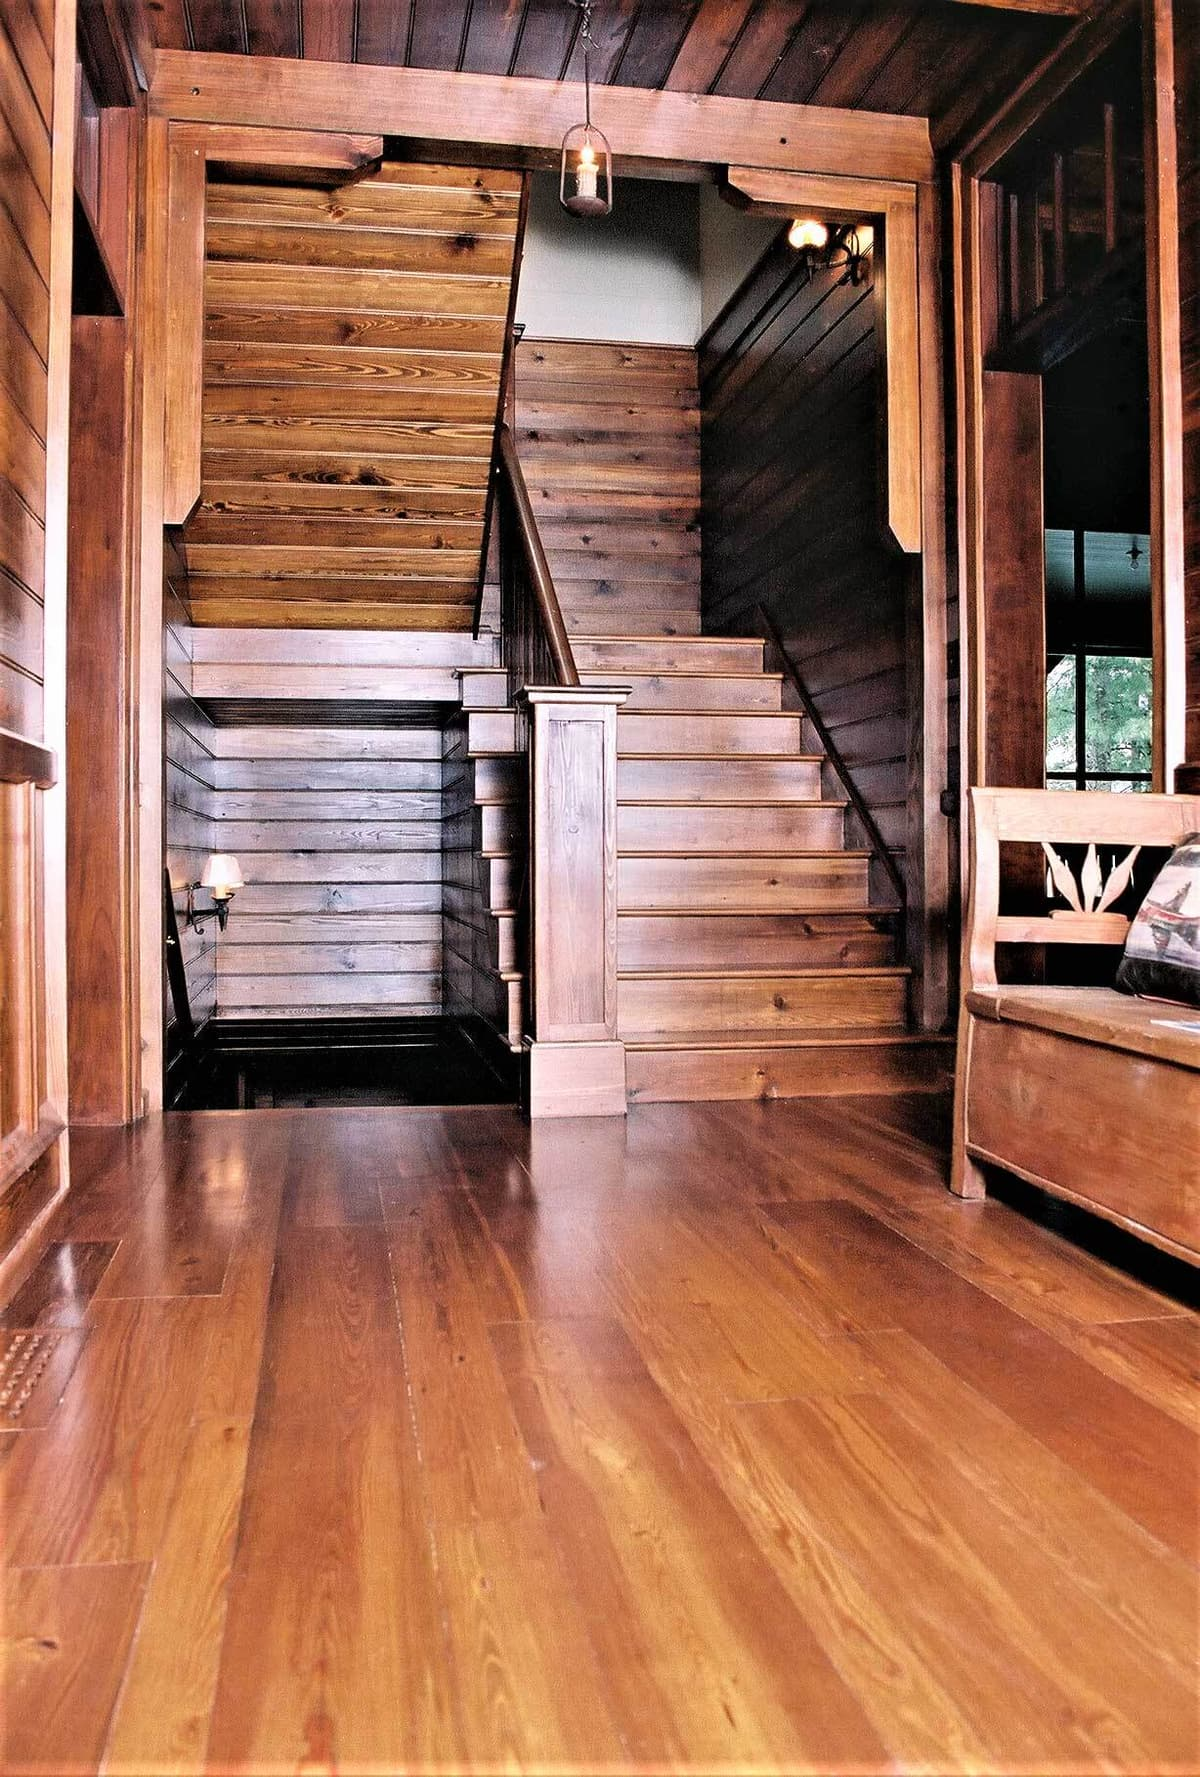 Reclaimed heart pine wood stair treads and landing in Lake Toxaway North Carolina.